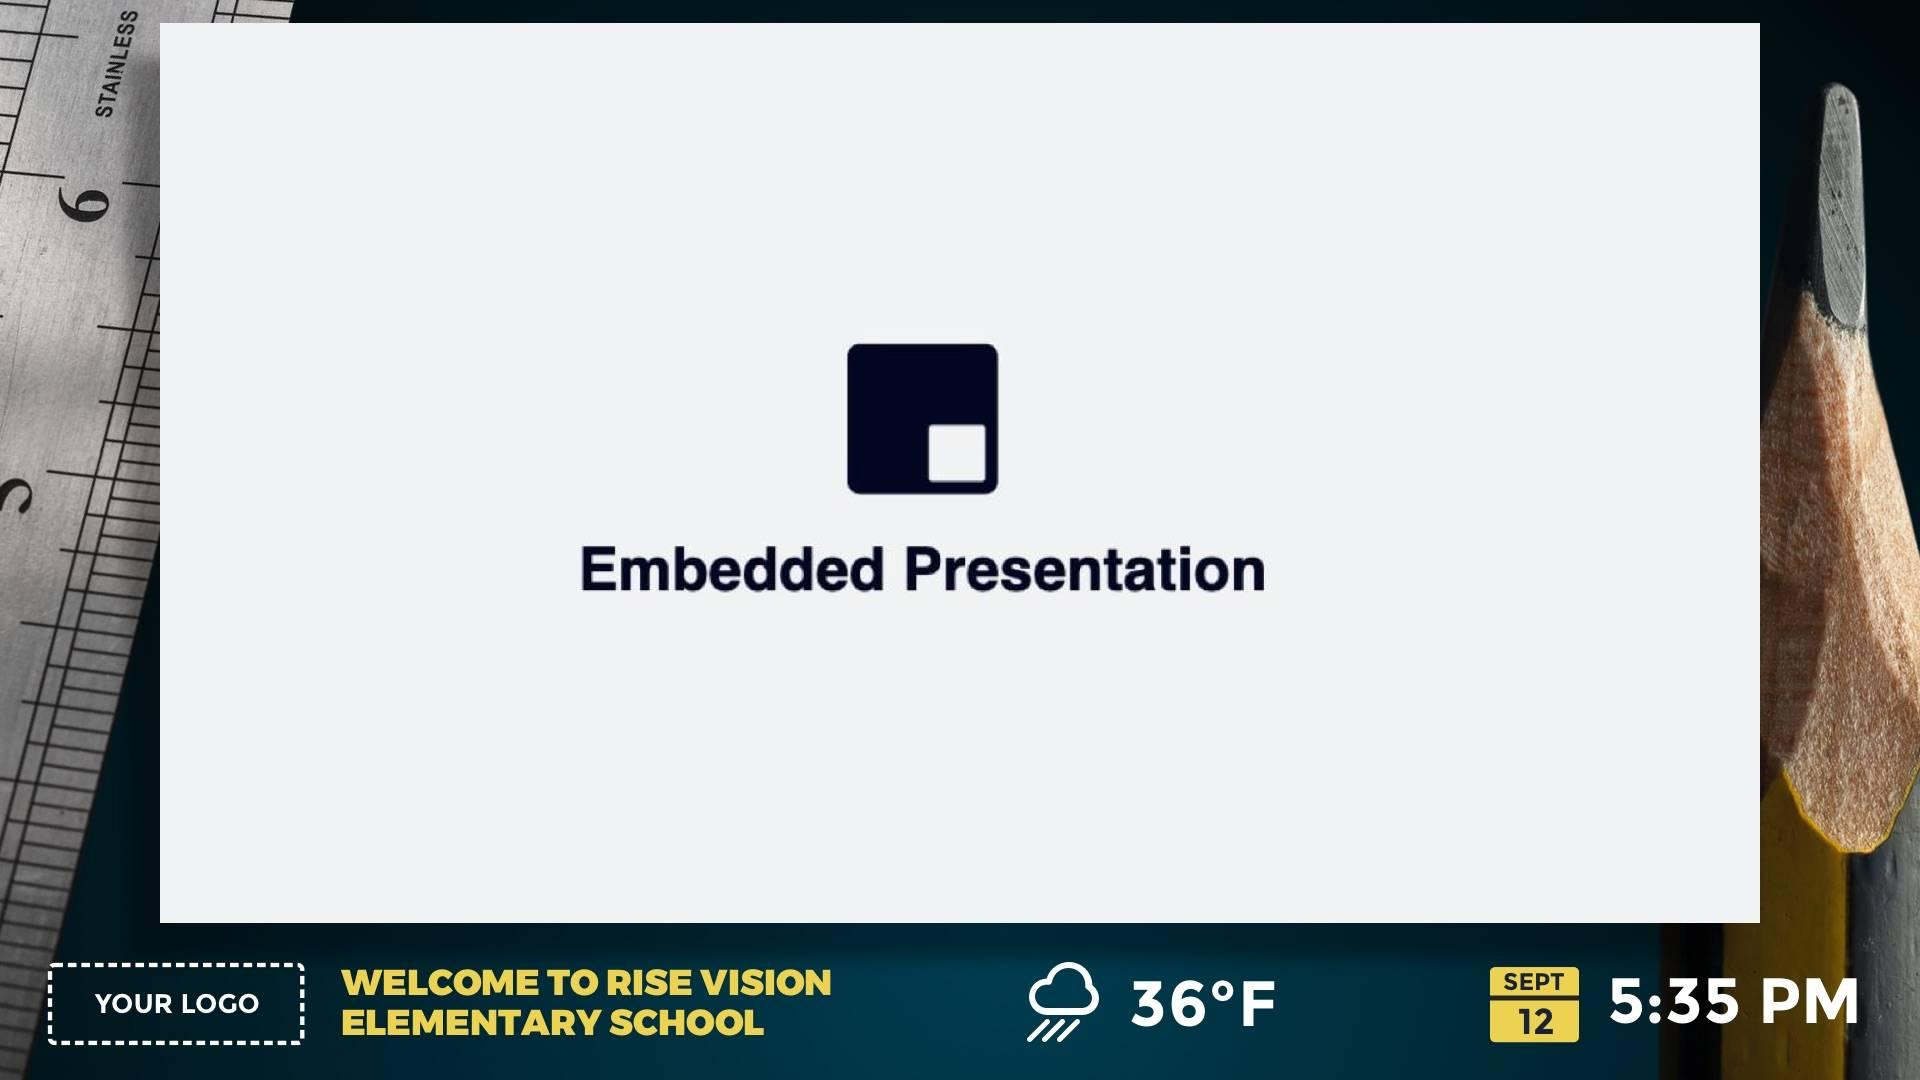 Zoned Embedded Centered Digital Signage Template